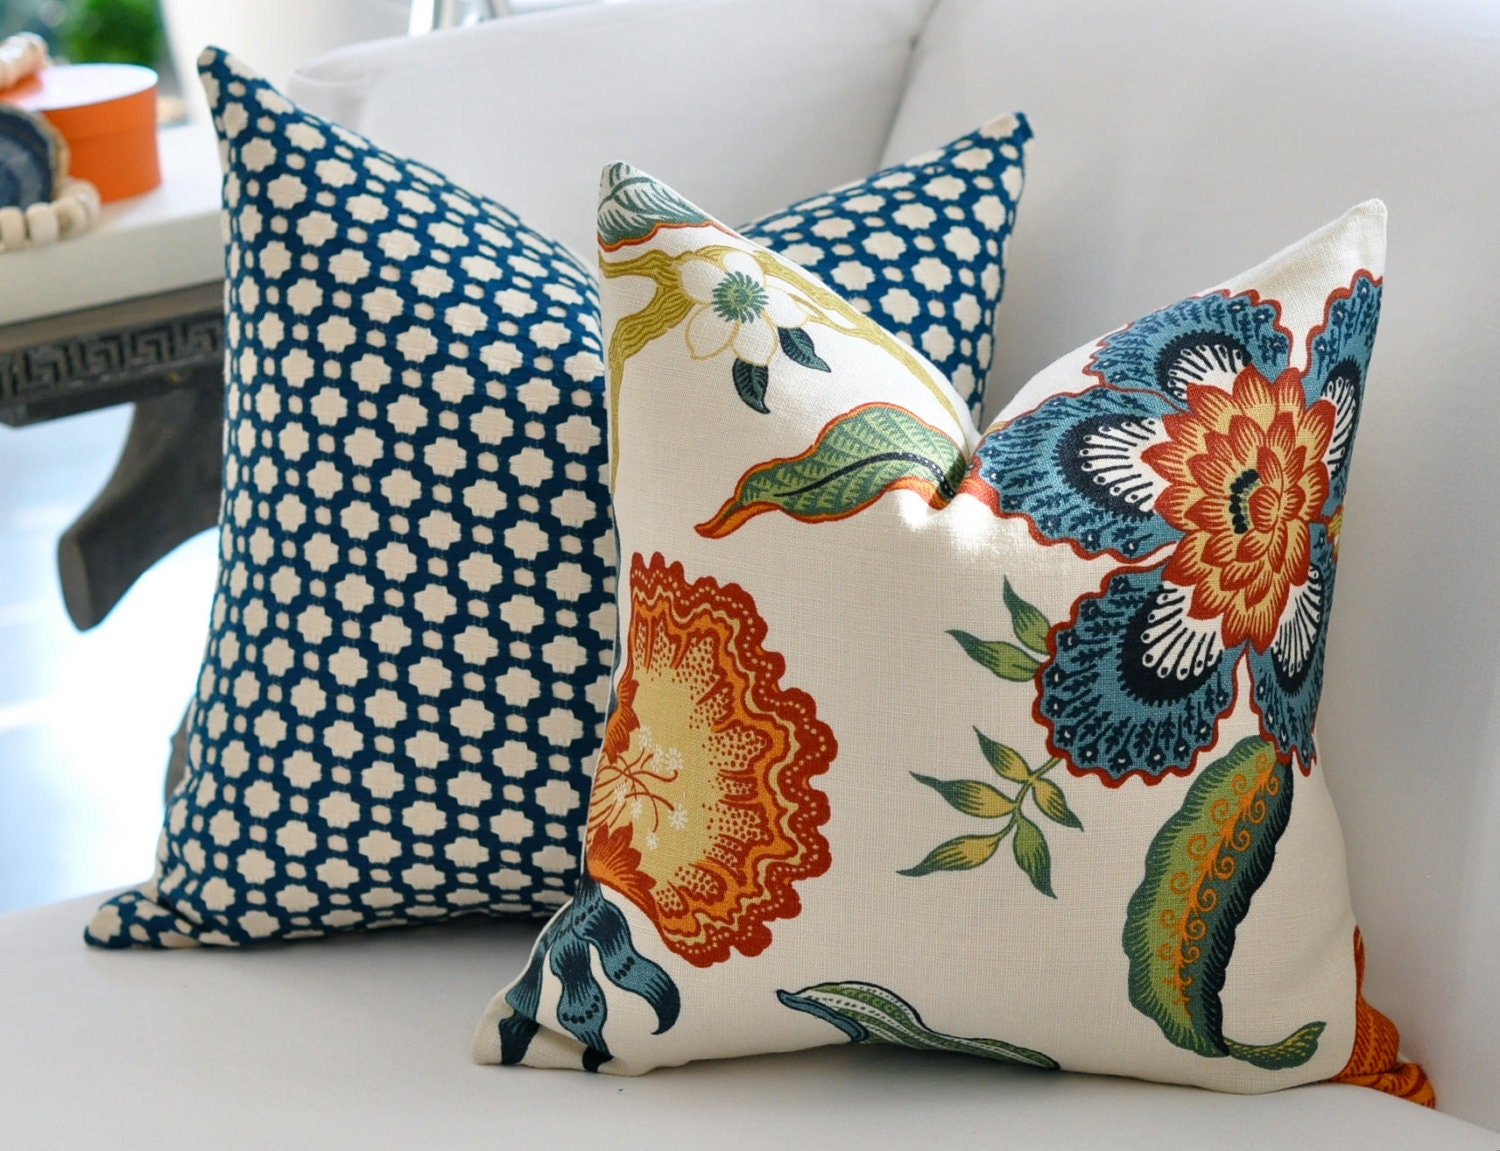 18x18 Hot House Flowers pillow cover in Spark